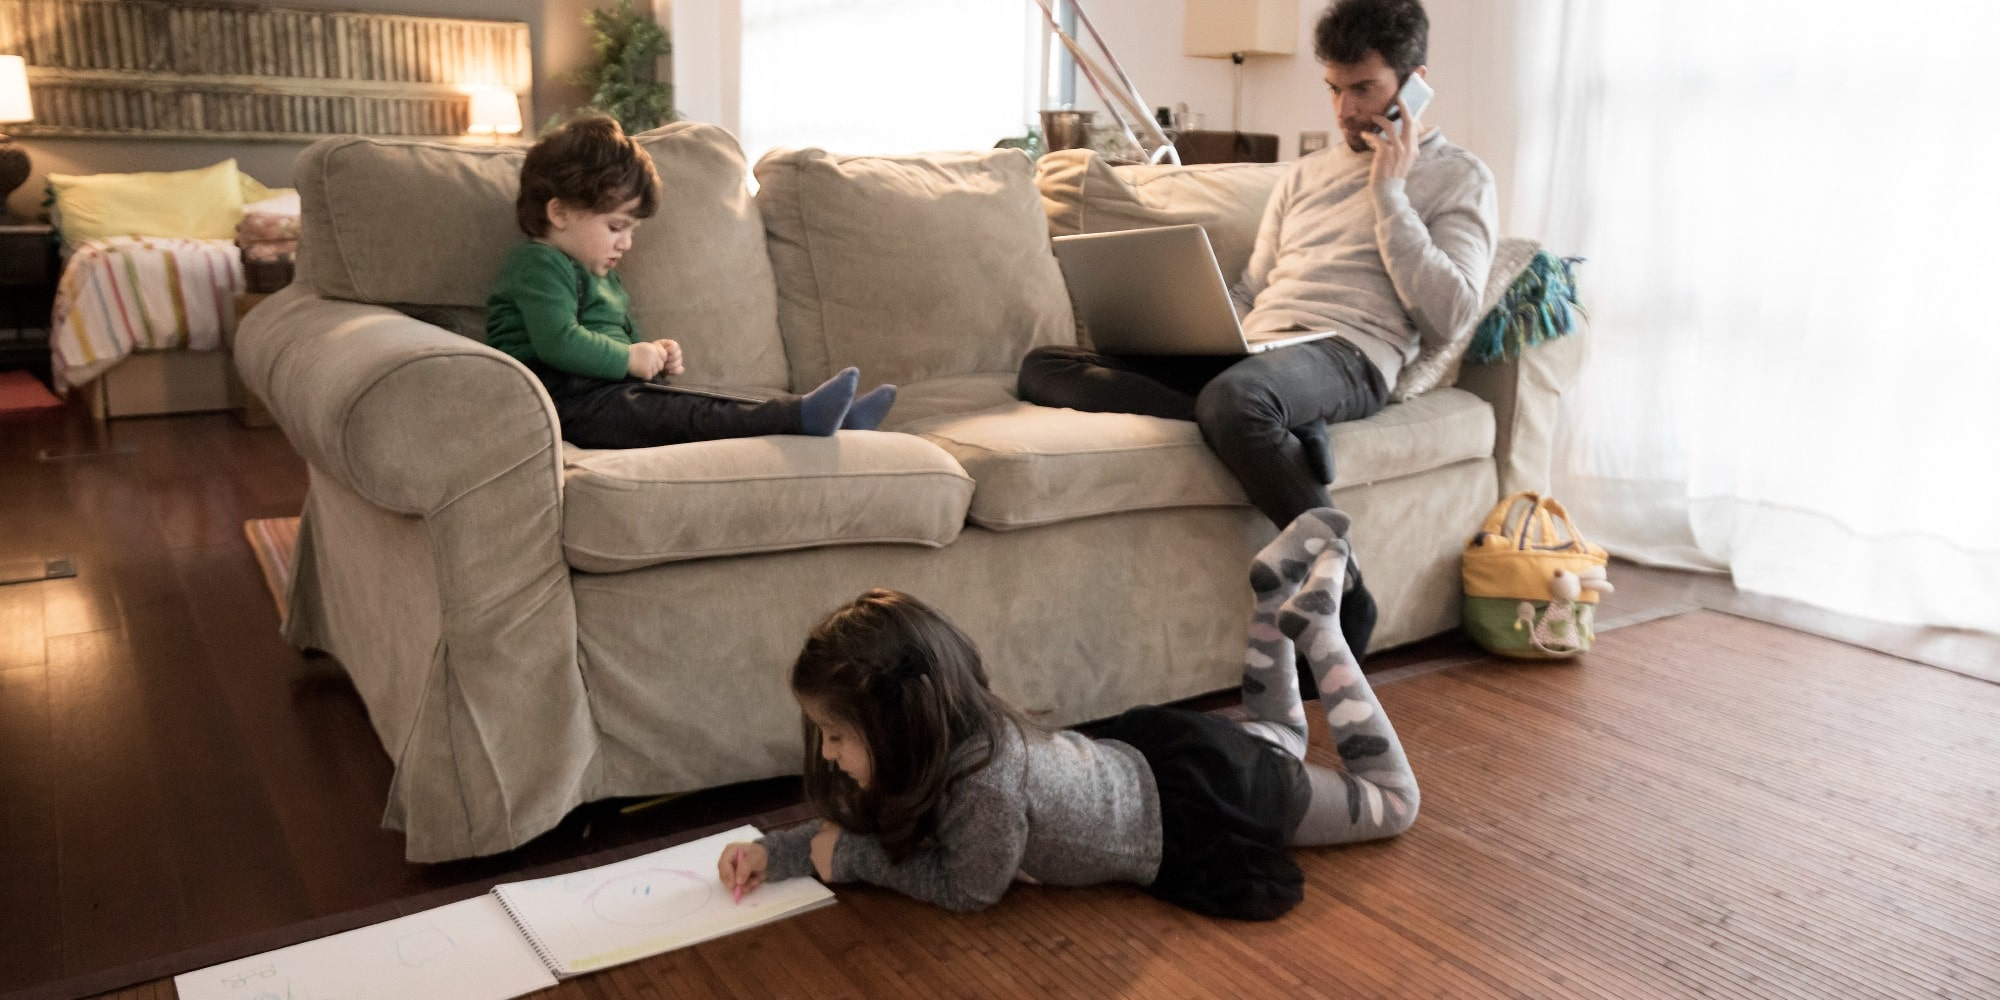 male father and two children sitting in in a living room working